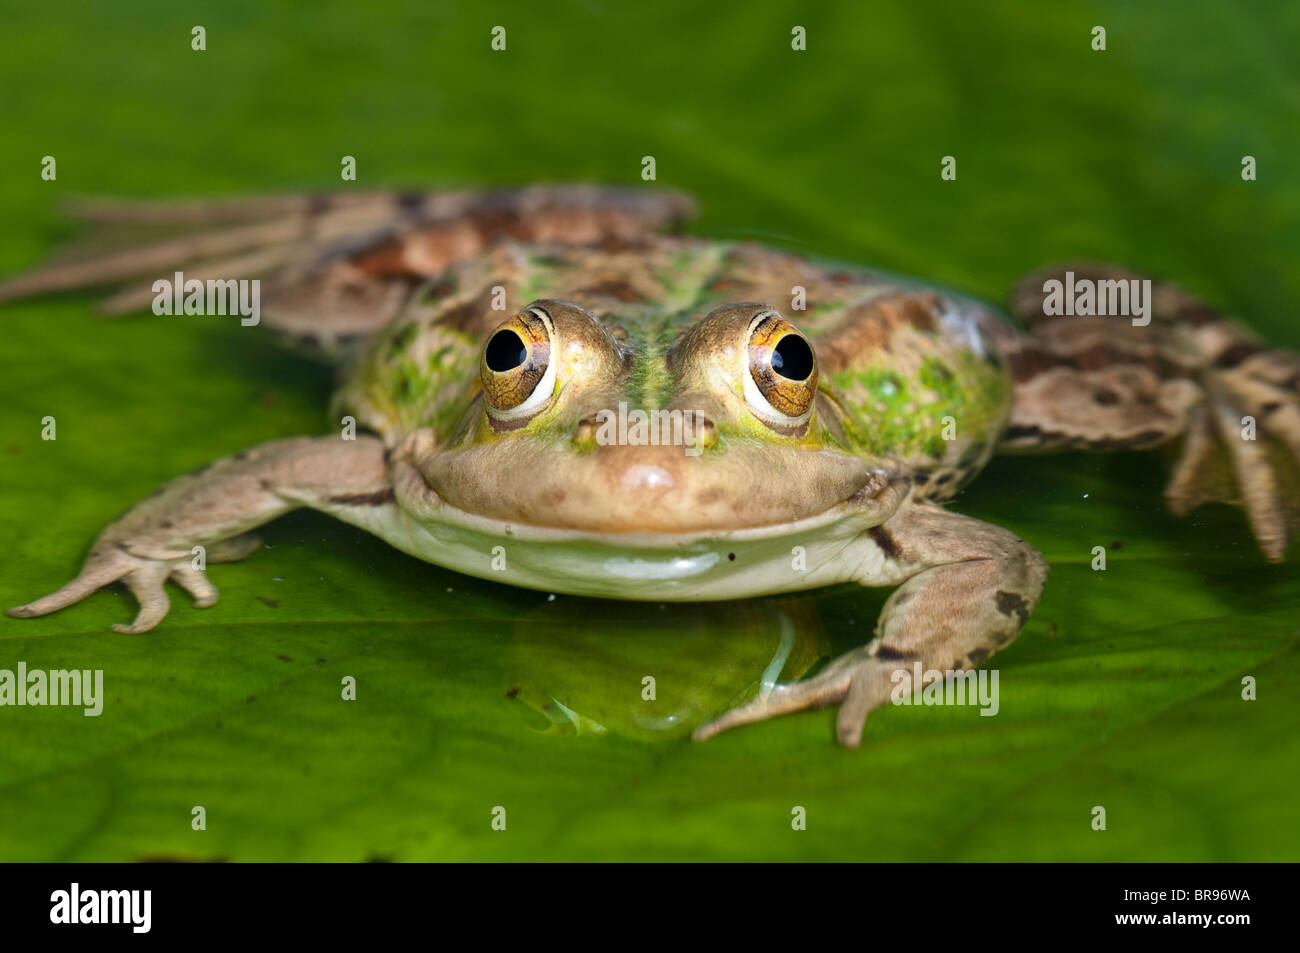 European Pool Frog - Pelophylax lessonae (formerly Rana lessonae) - Stock Image